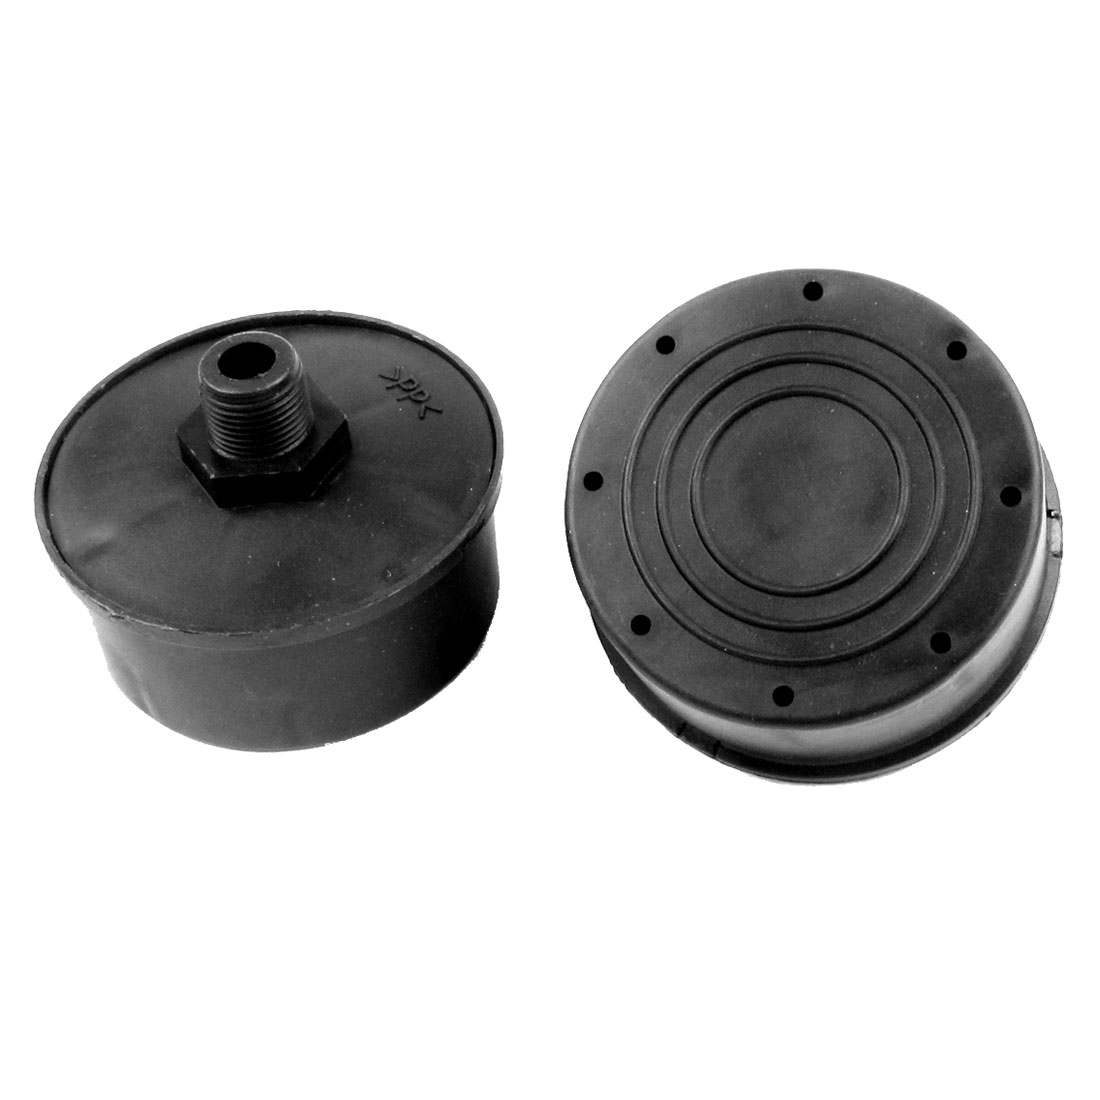 Air Compressor Black 15mm Dia Thread Muffler Silencer 2 Pcs